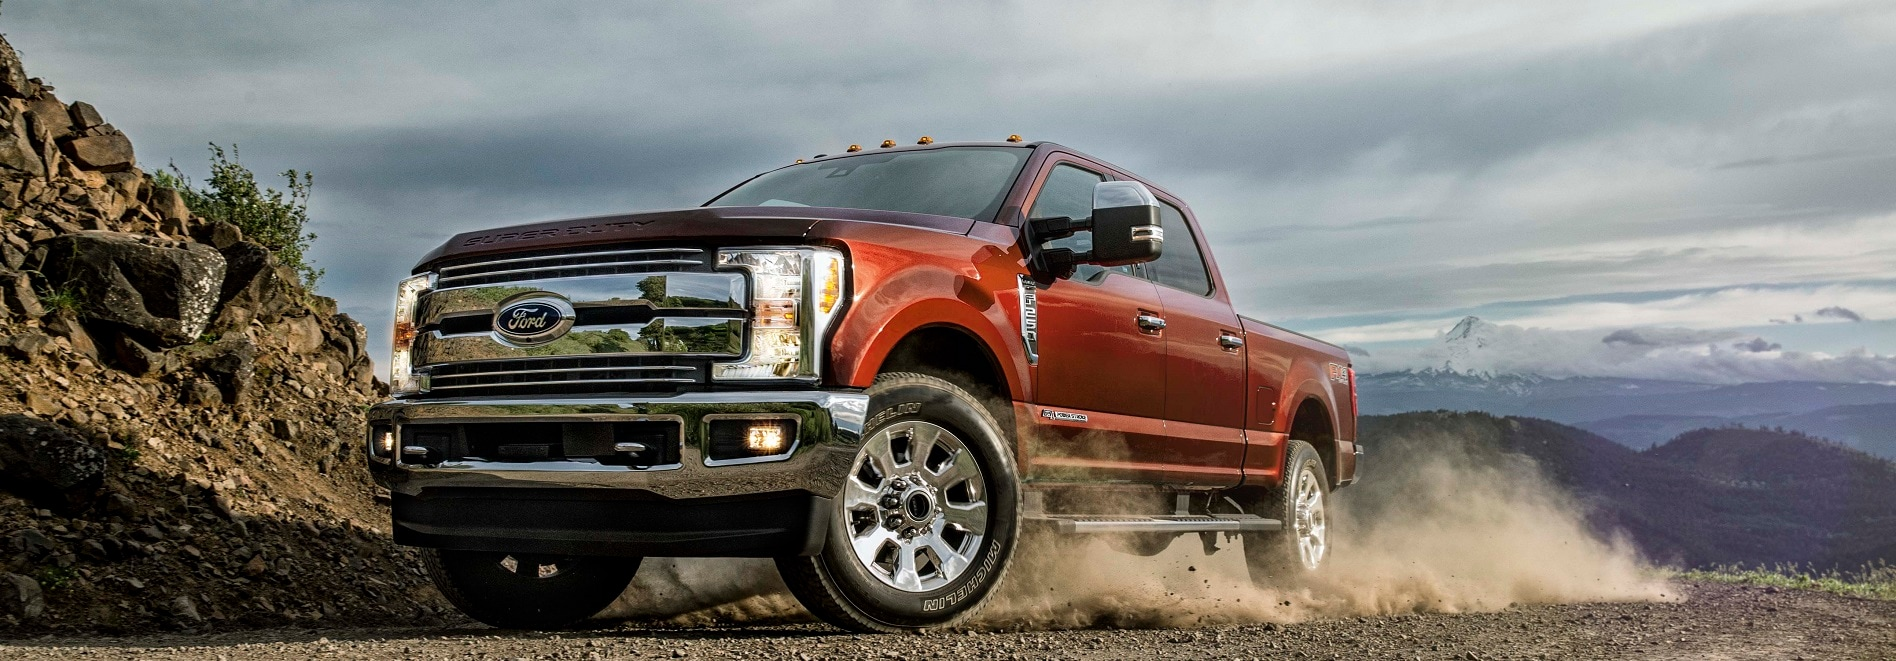 2018 ford f 250 for sale in falls church koons falls church ford. Black Bedroom Furniture Sets. Home Design Ideas